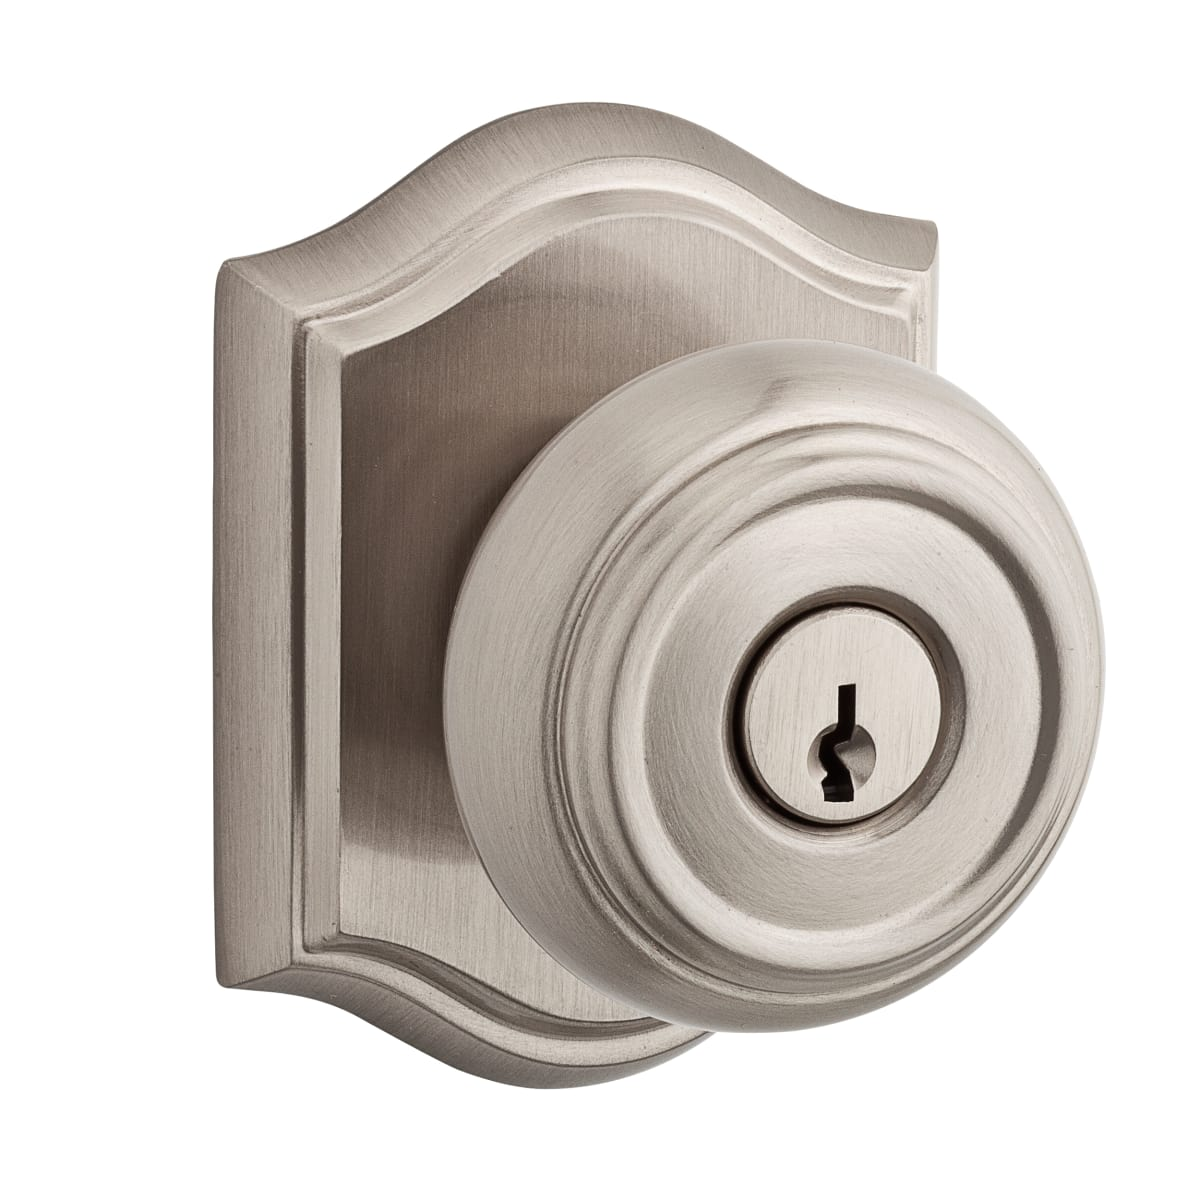 Baldwin Traditional Single Cylinder Keyed Entry Door Knob Set with Traditional Arch Rose